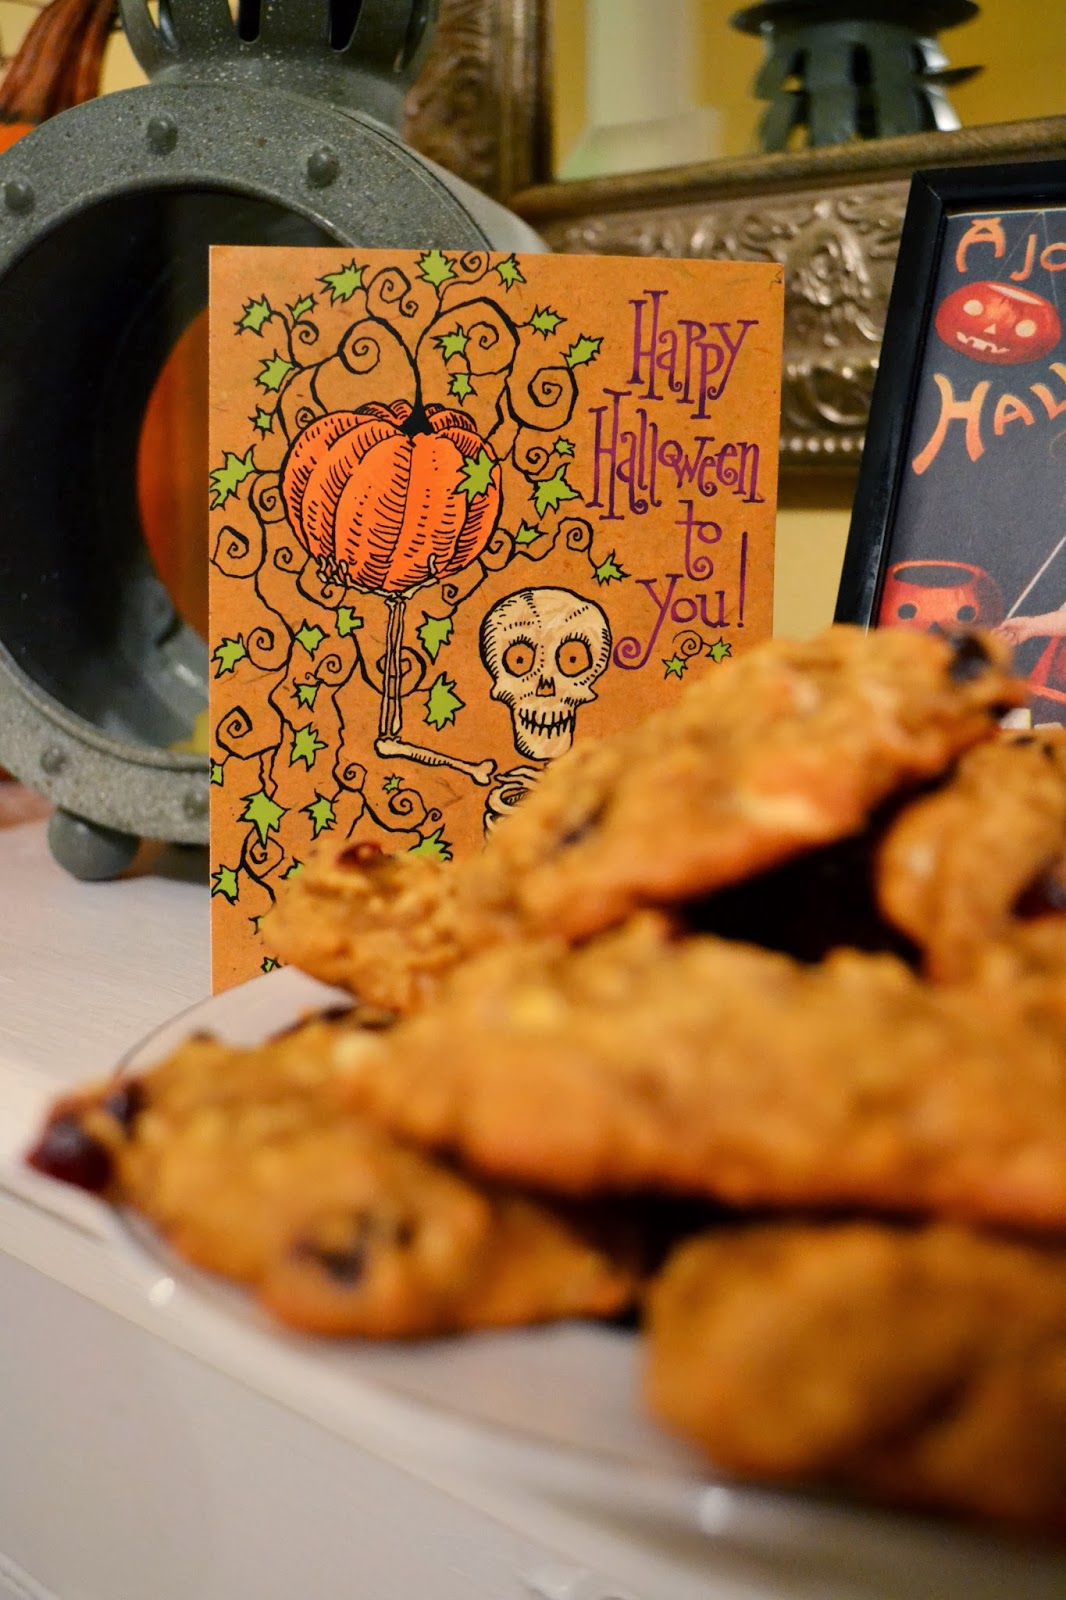 ... Pumpkin Oatmeal Cookies with White Chocolate Chips and Dried